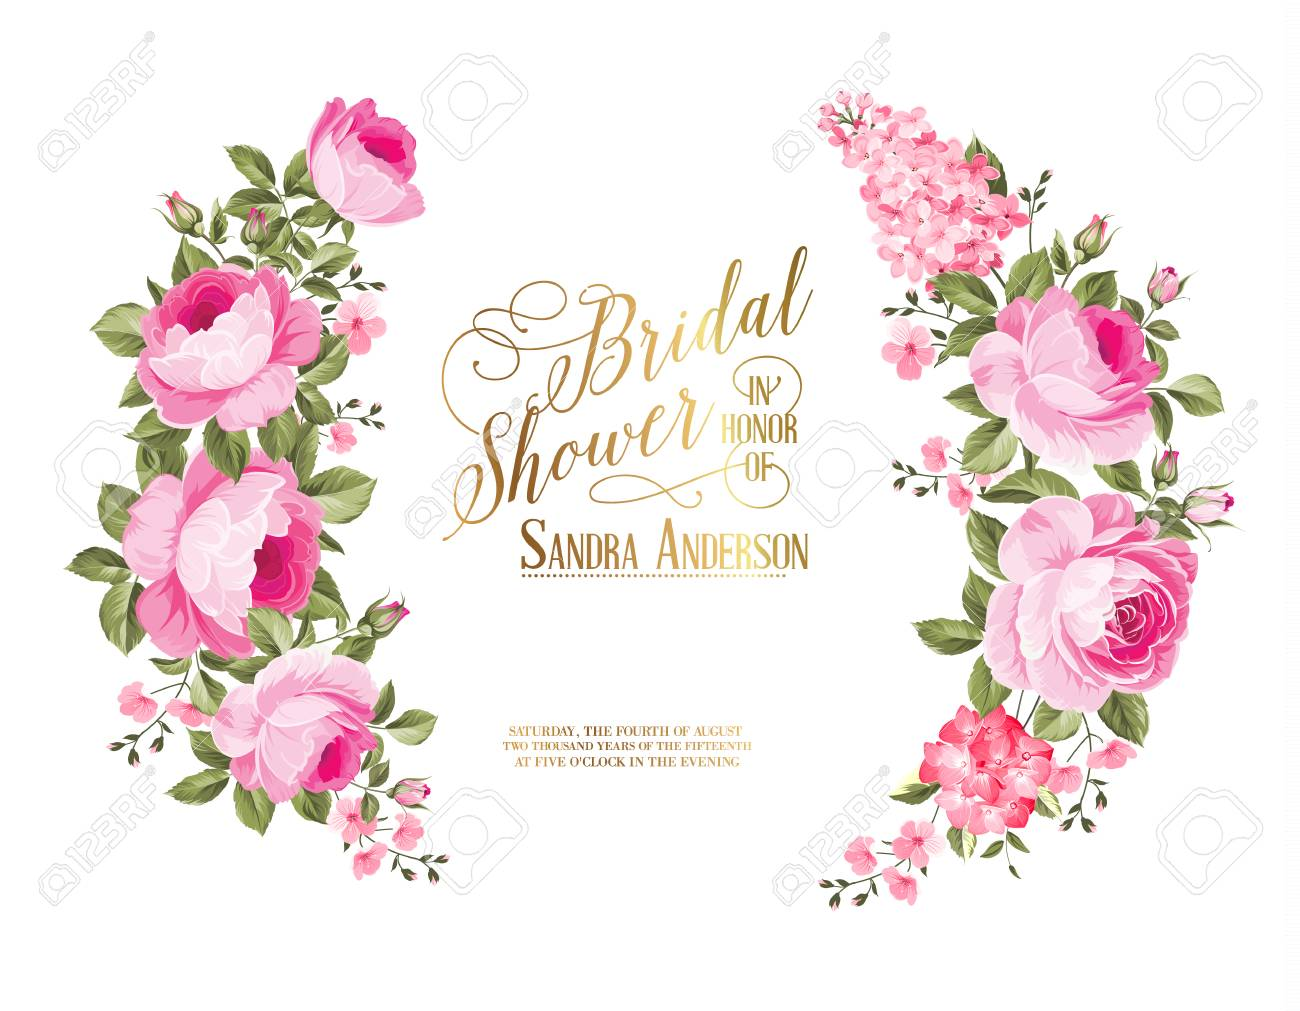 red rose flower wreath with calligraphic text for bridal shower invitation vector illustration stock